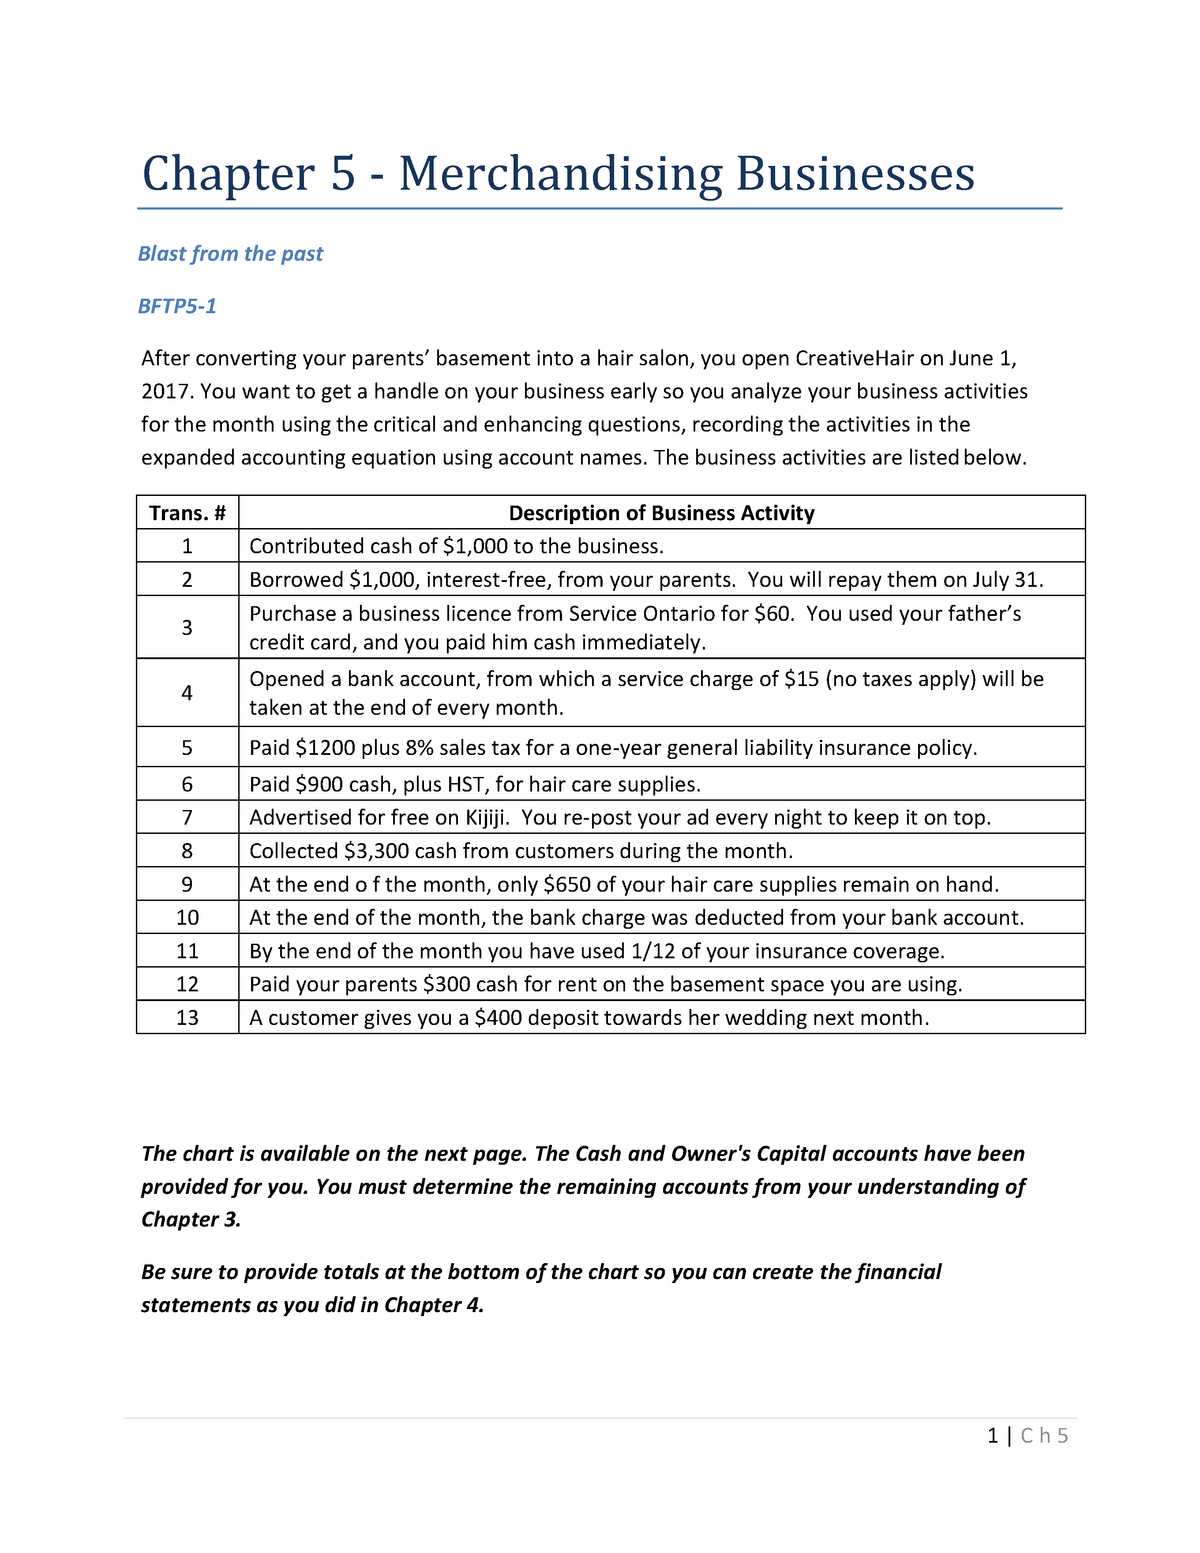 Chapter 5 - Merchandising Businesses - Student Copy - ACC